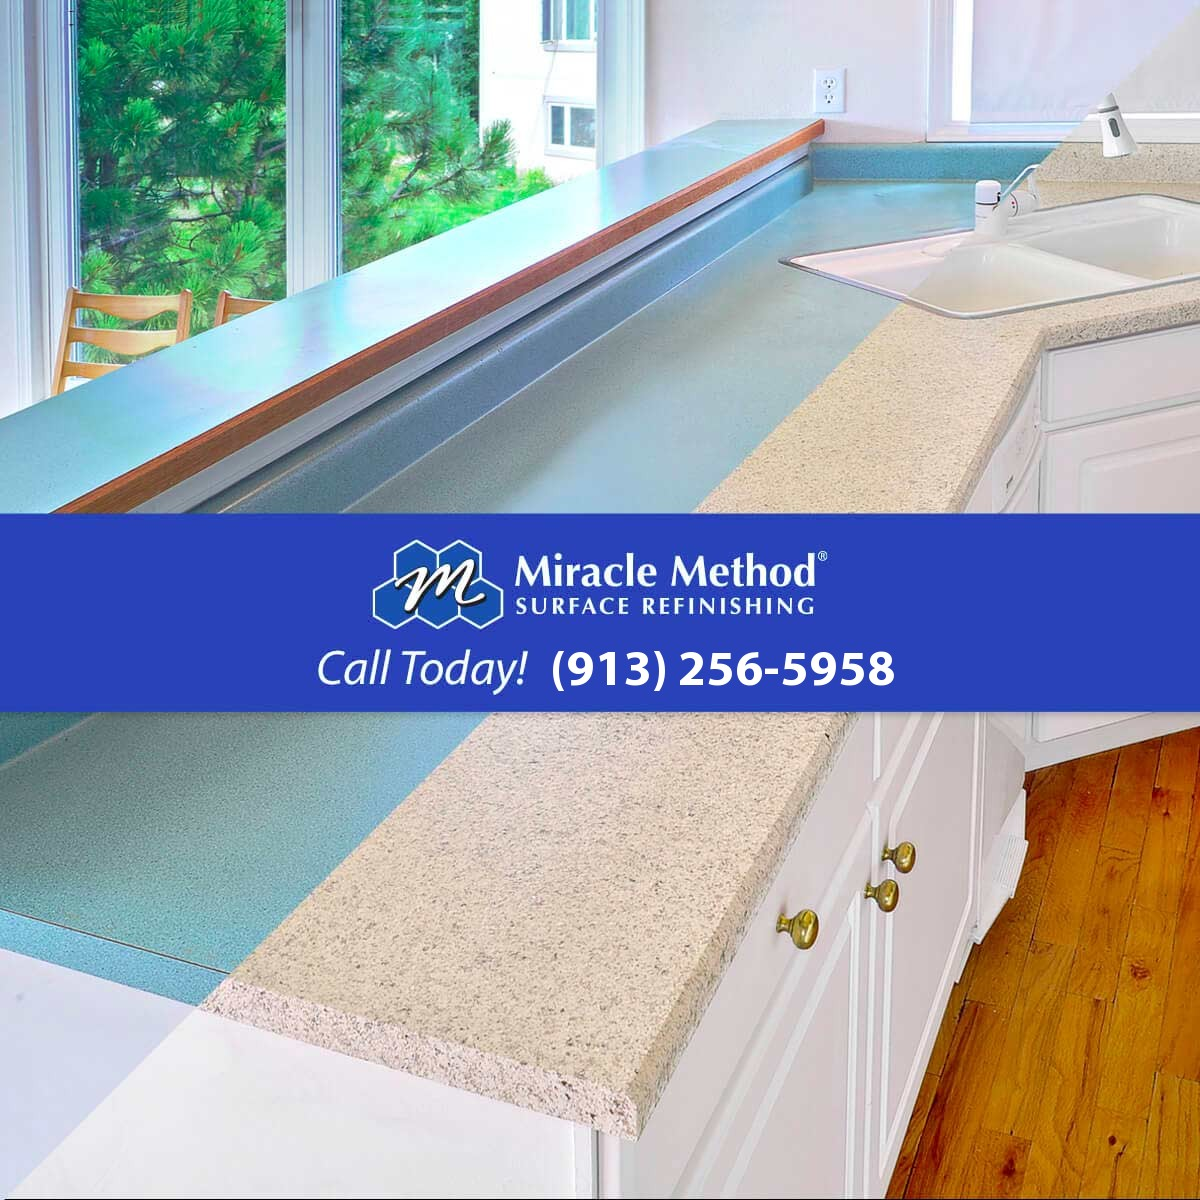 Lenexa KS Bathtub Refinishing Amp Tub Repair Miracle